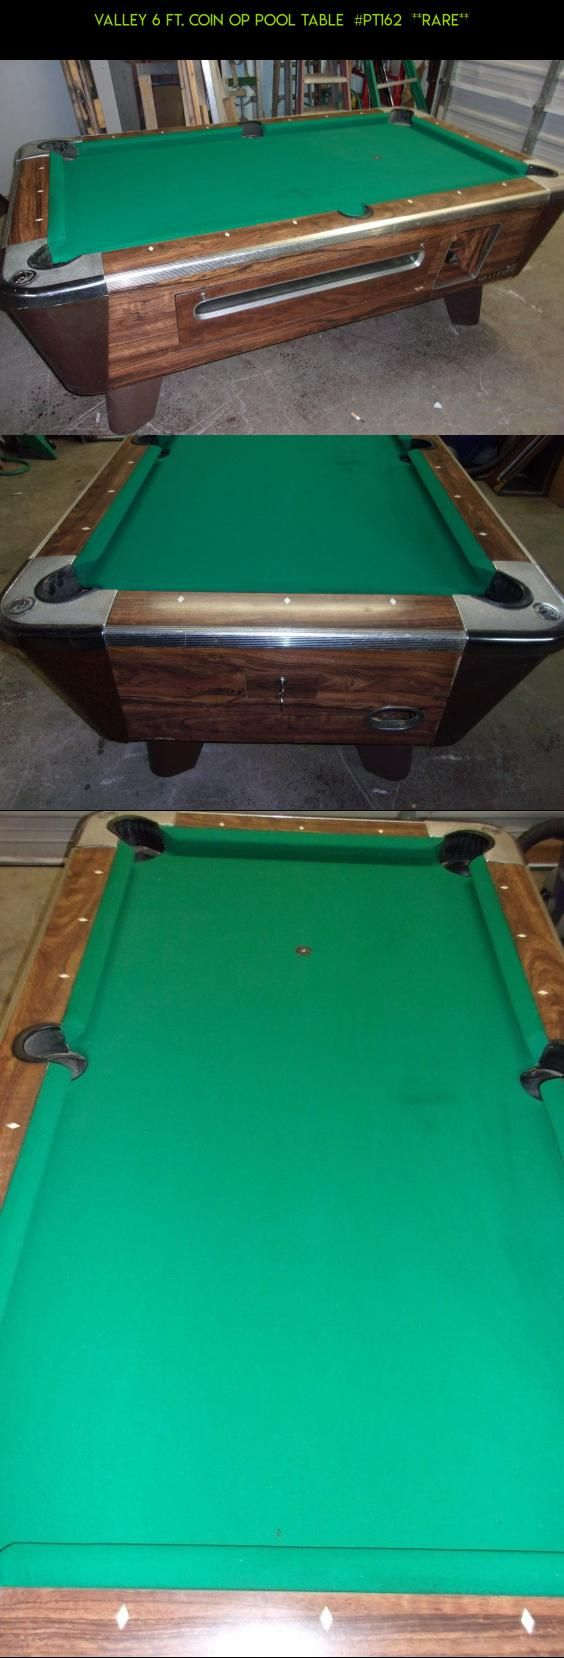 Pool table legs accessories for sale - Valley 6 Ft Coin Op Pool Table Pt162 Rare